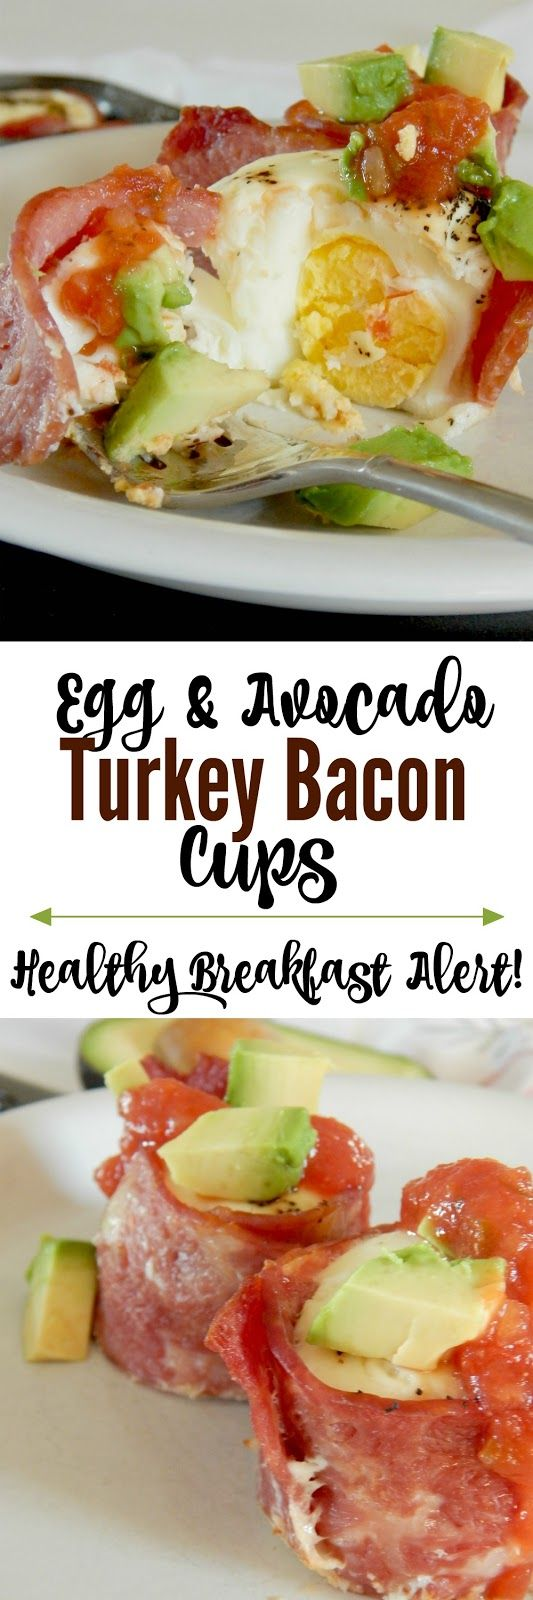 Egg and Avocado Turkey Bacon Cups...a protein-filled, hearty breakfast that's easy to prep ahread and bake off for the week ahead. Turkey bacon, eggs, creamy avocado and salsa make the perfect bite! Sponsored by the Iowa Egg Council.